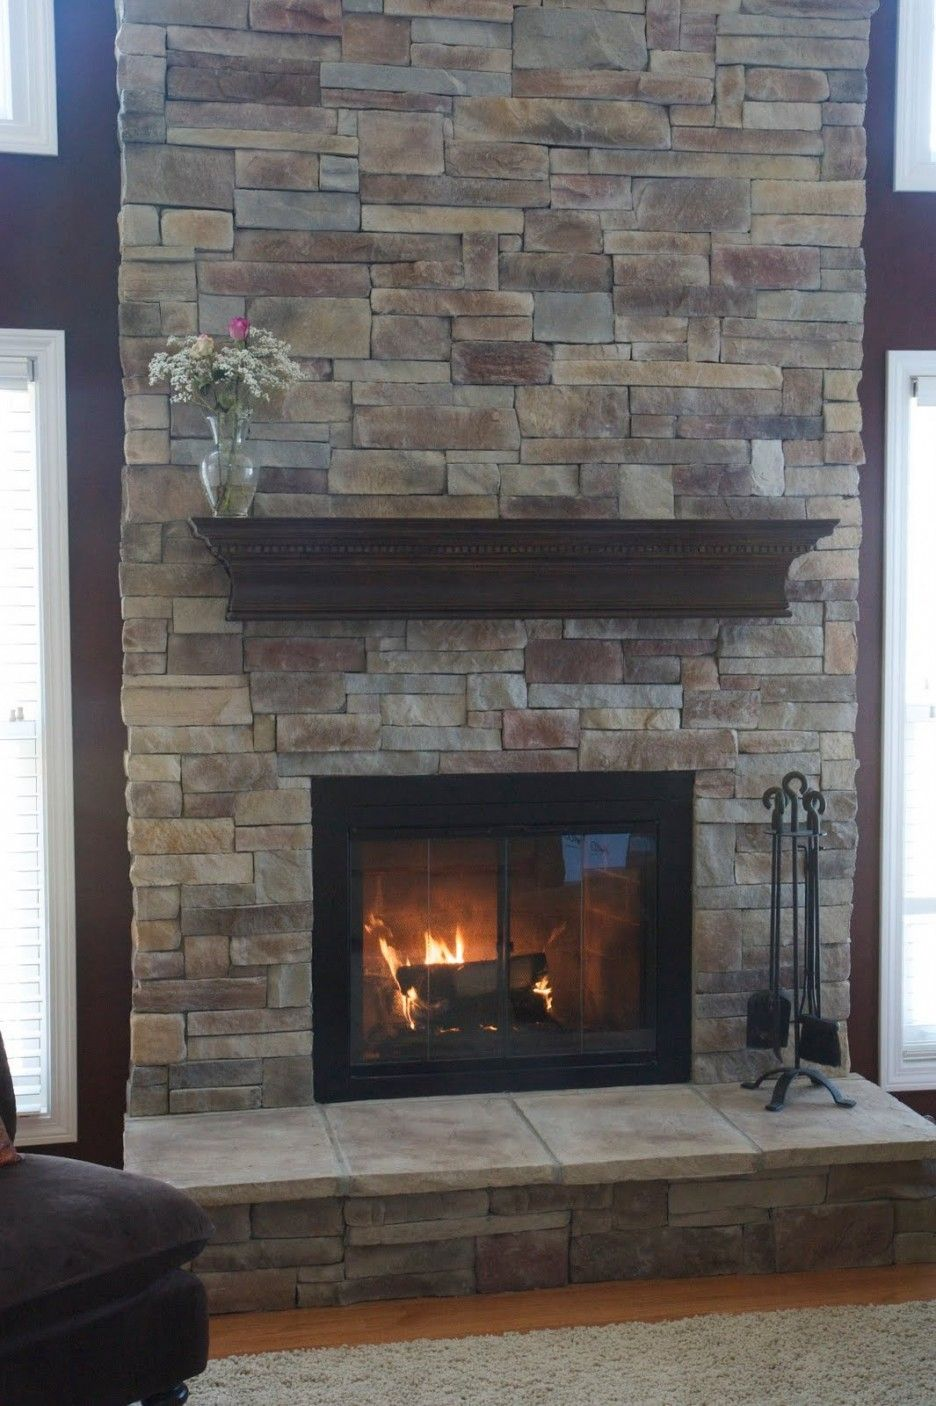 Cool Stacked Gray Stone Fireplace Veneer Come With Wooden Fireplace Mantel Shelf In Espresso Fi Brick Fireplace Makeover Home Fireplace Stone Fireplace Designs